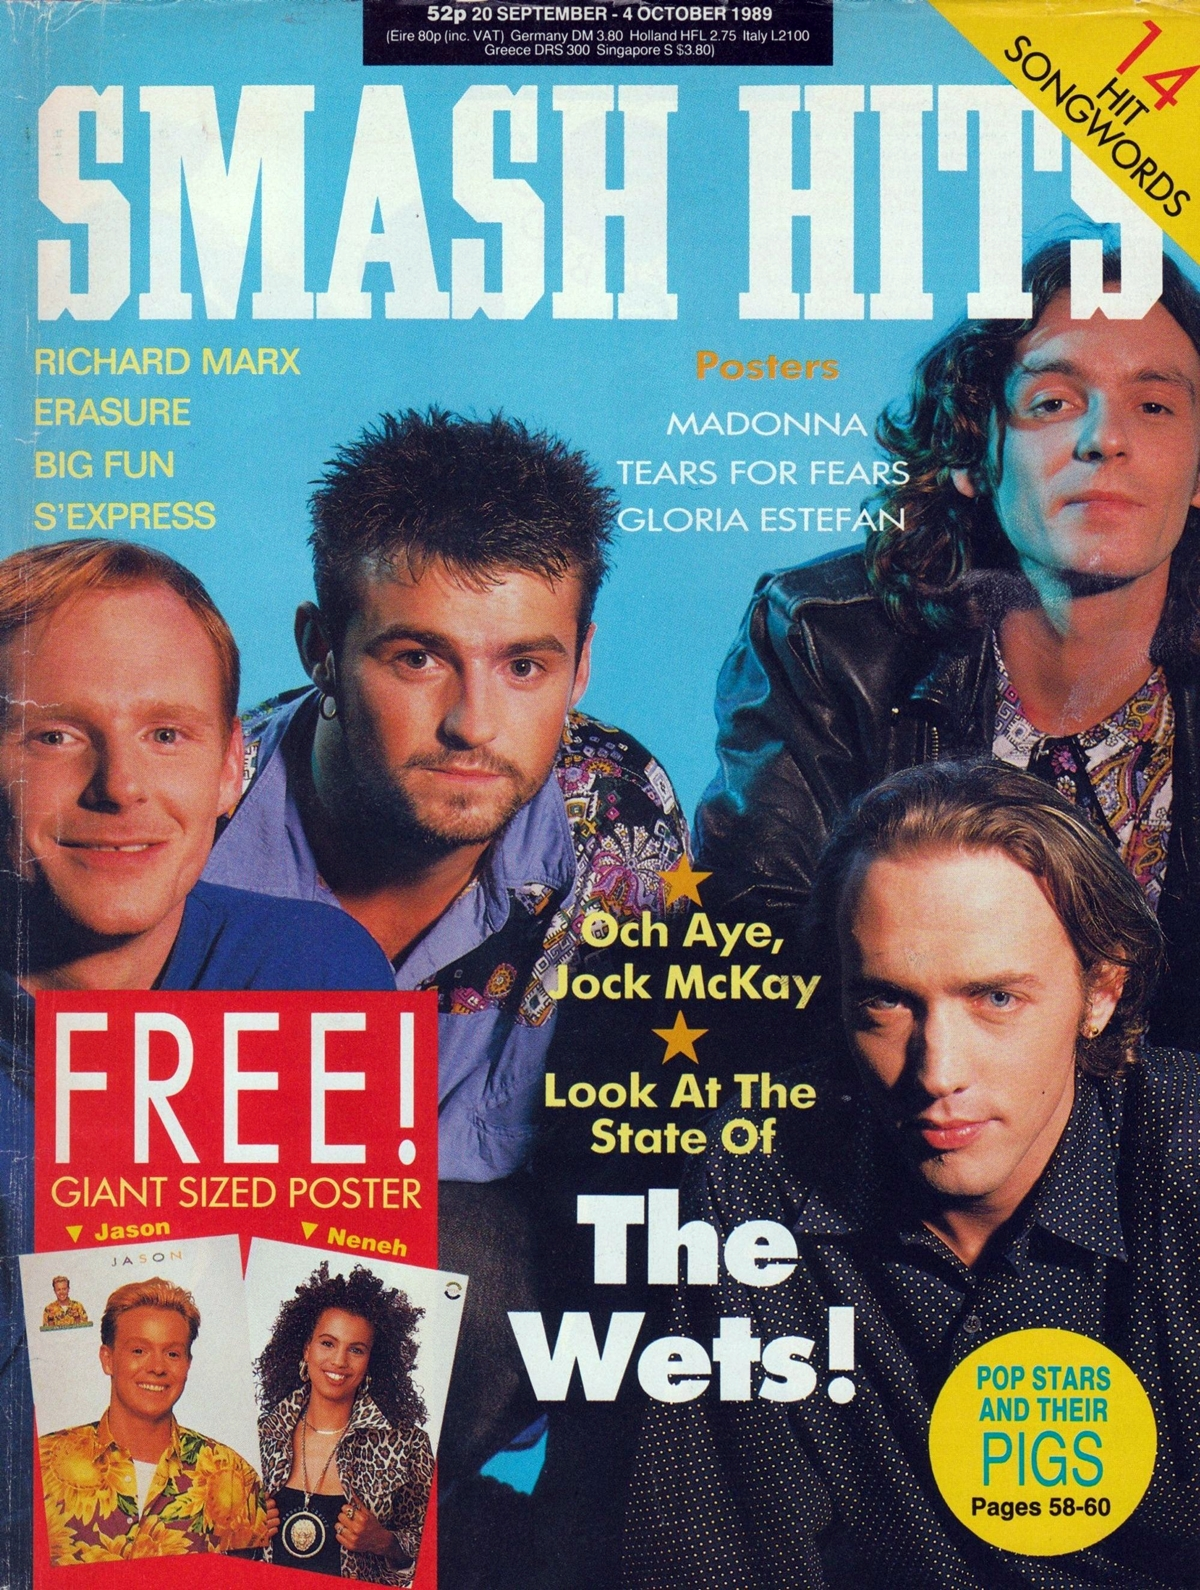 16 2 16 Smash Hits Covers That Will Take You Right Back To Your Youth